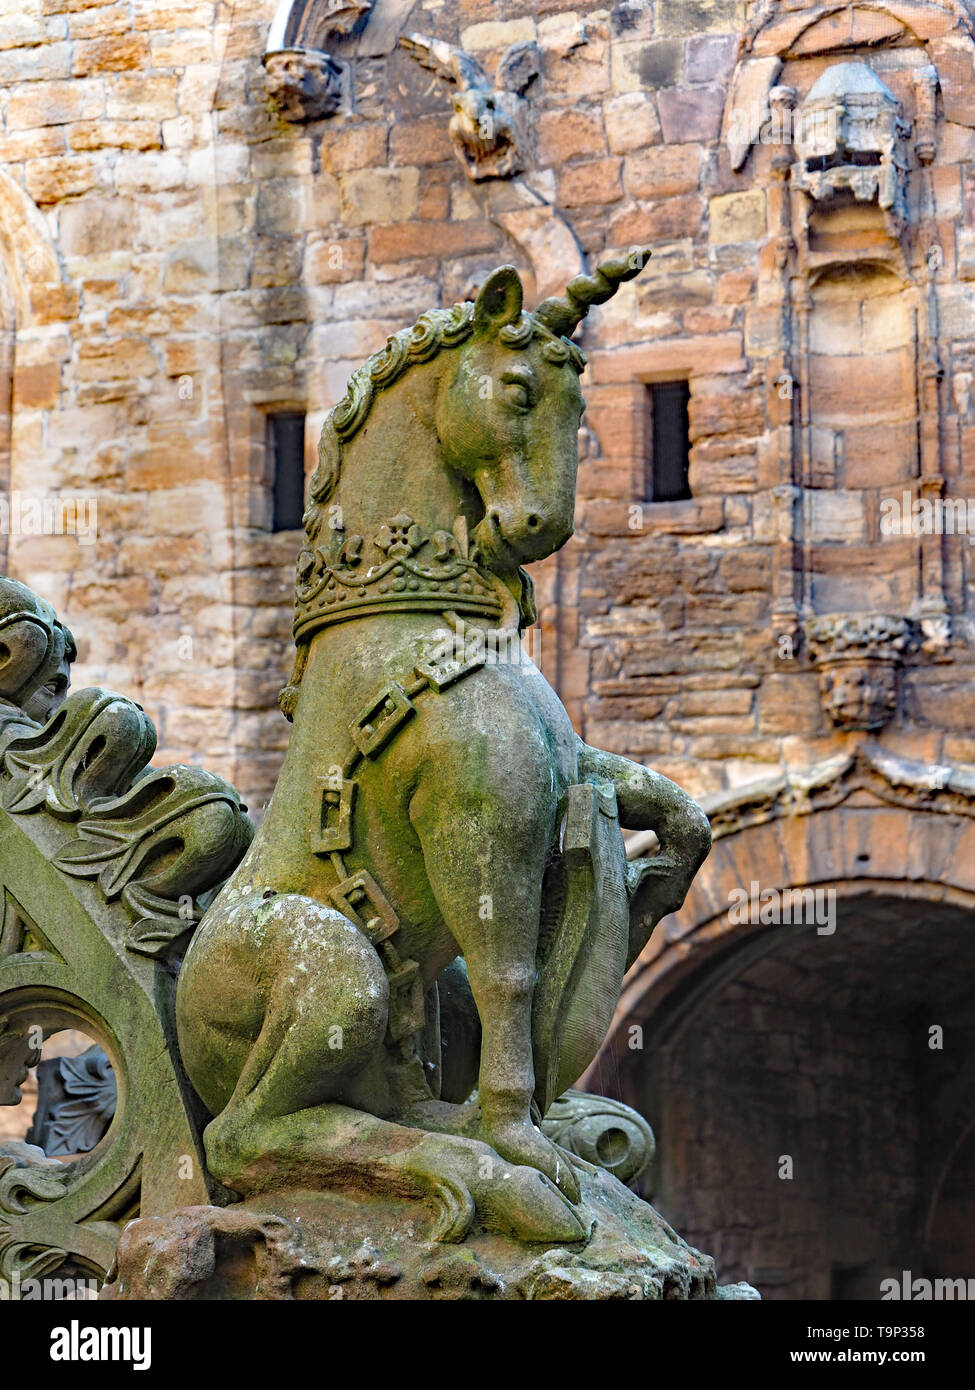 LINLITHGOW, SCOTLAND - SEPTEMBER 2016:  The central courtyard of Linlithgow Palace contains an ornate fountain with numerous statutes of mythical crea Stock Photo